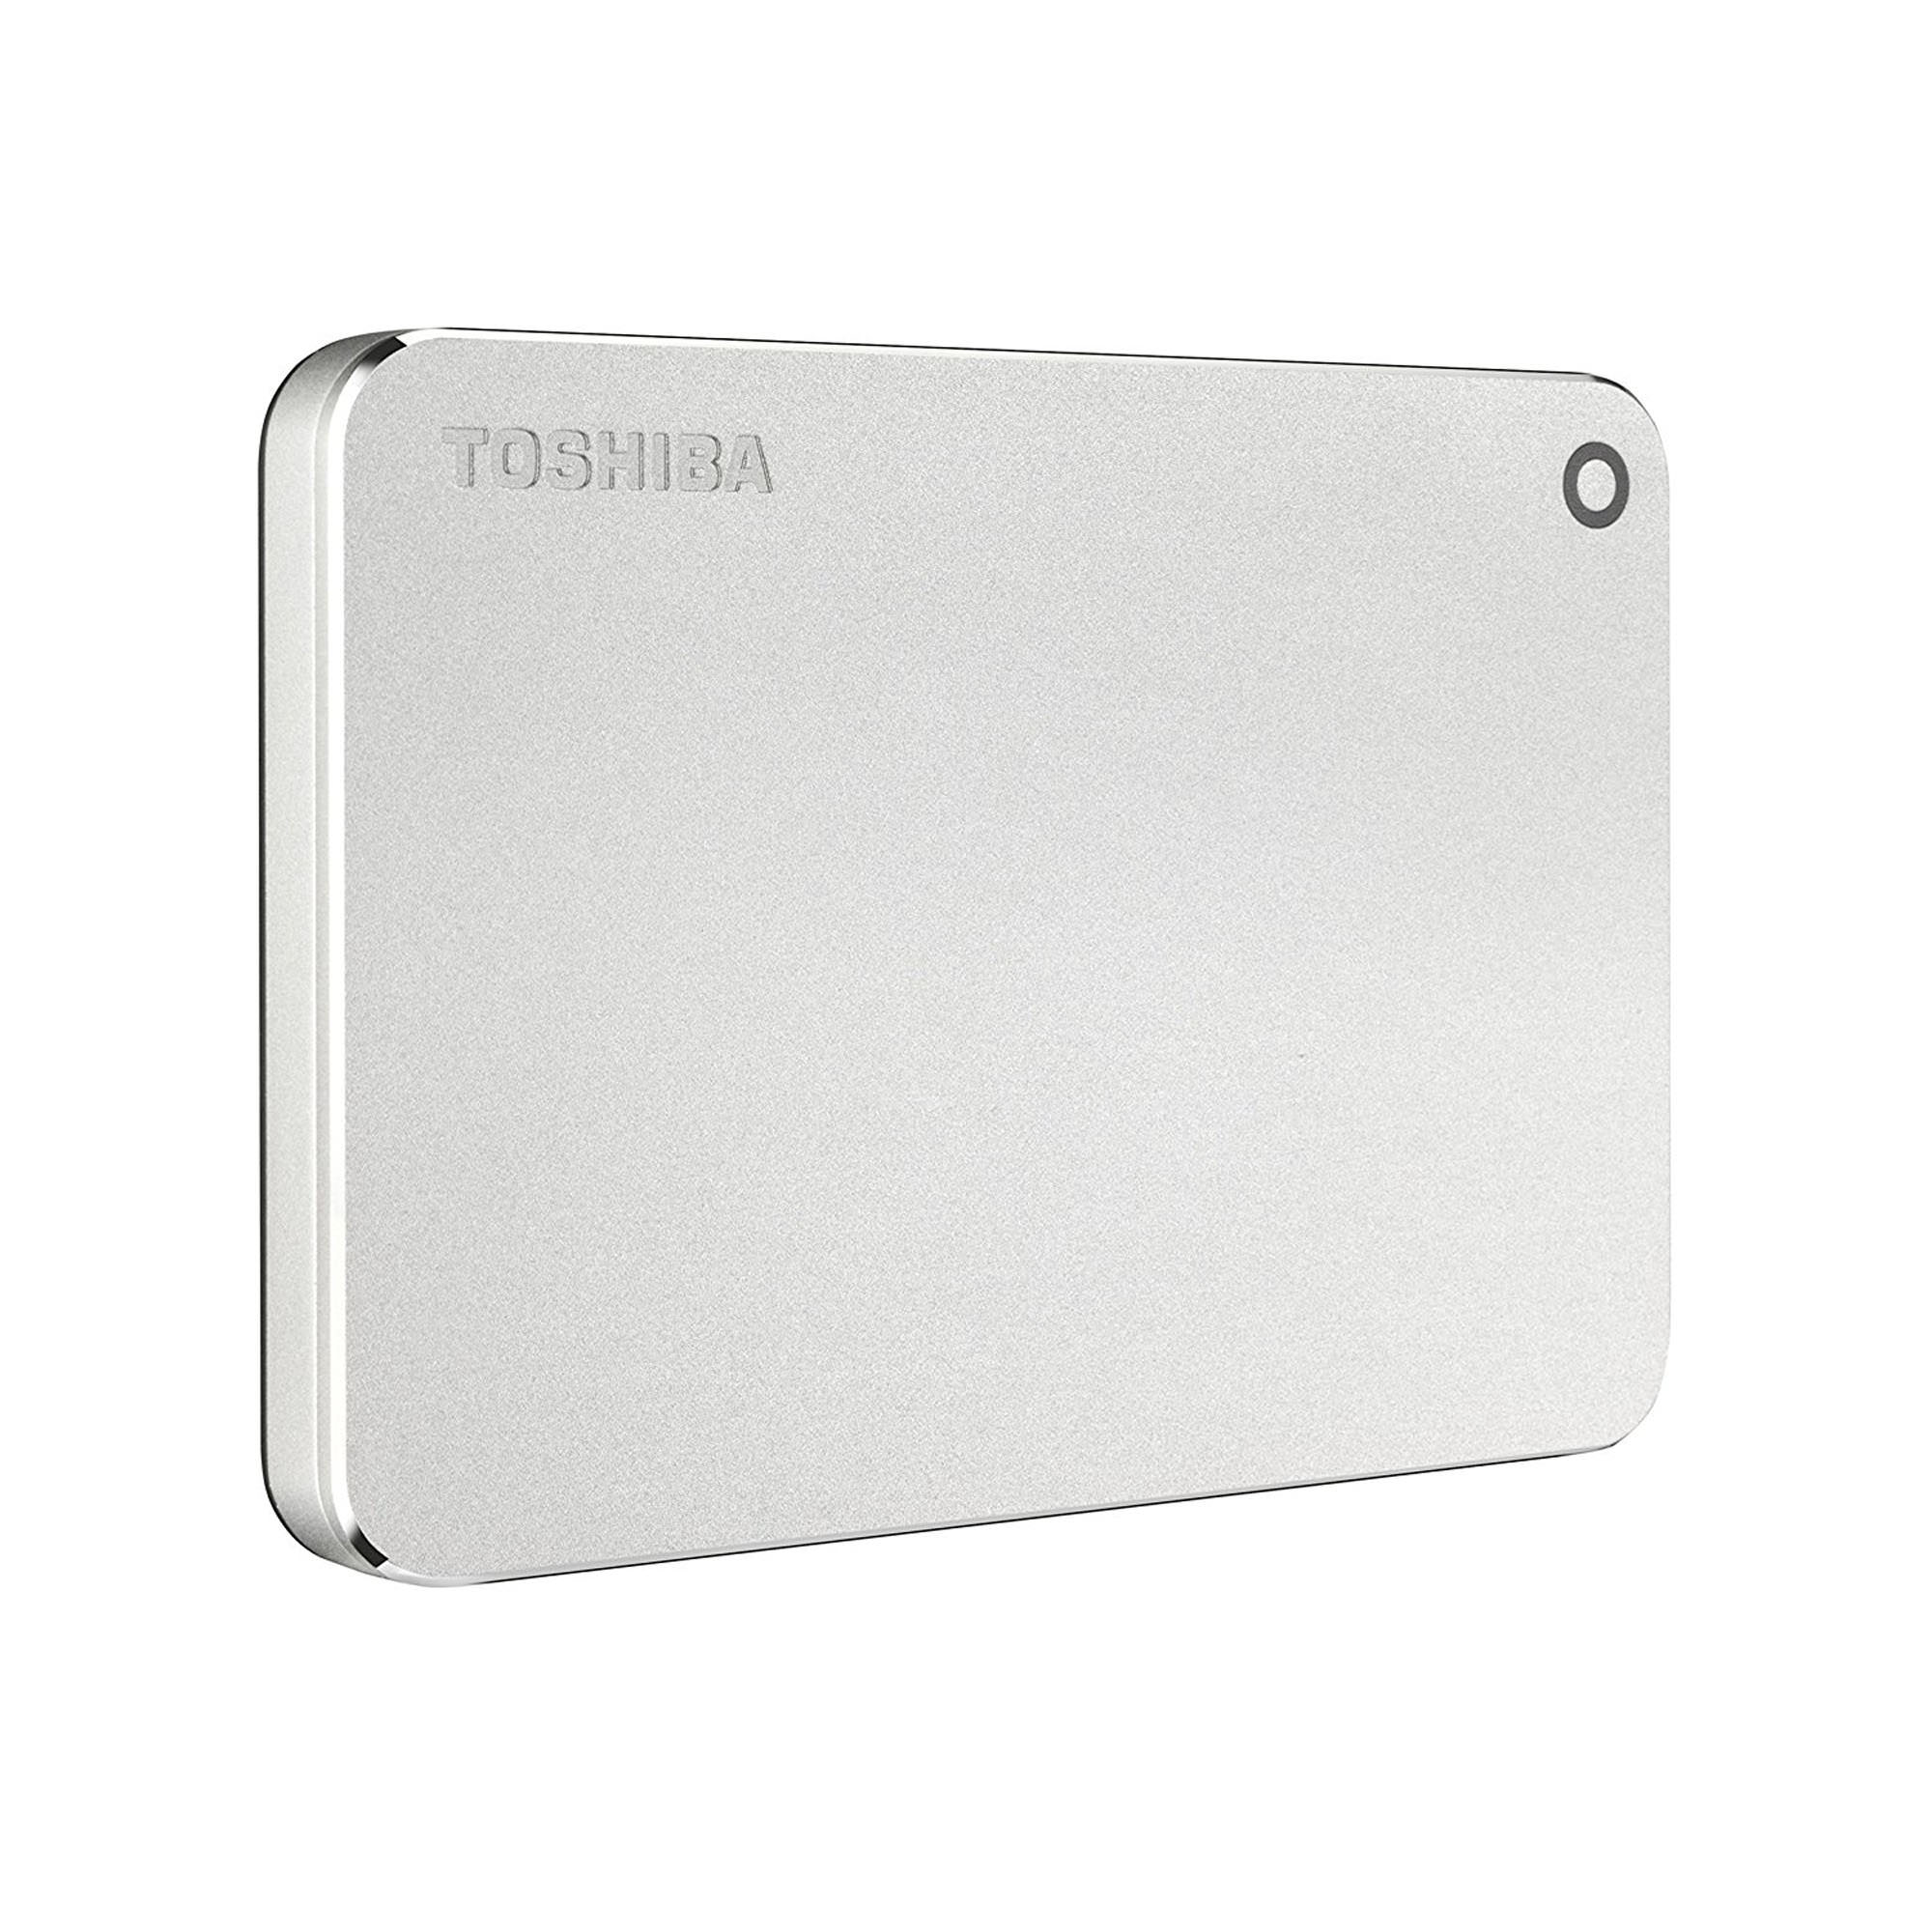 Toshiba Canvio Advance 1TB Portable External Hard Drive USB 3.0 Red HDTC910XR3